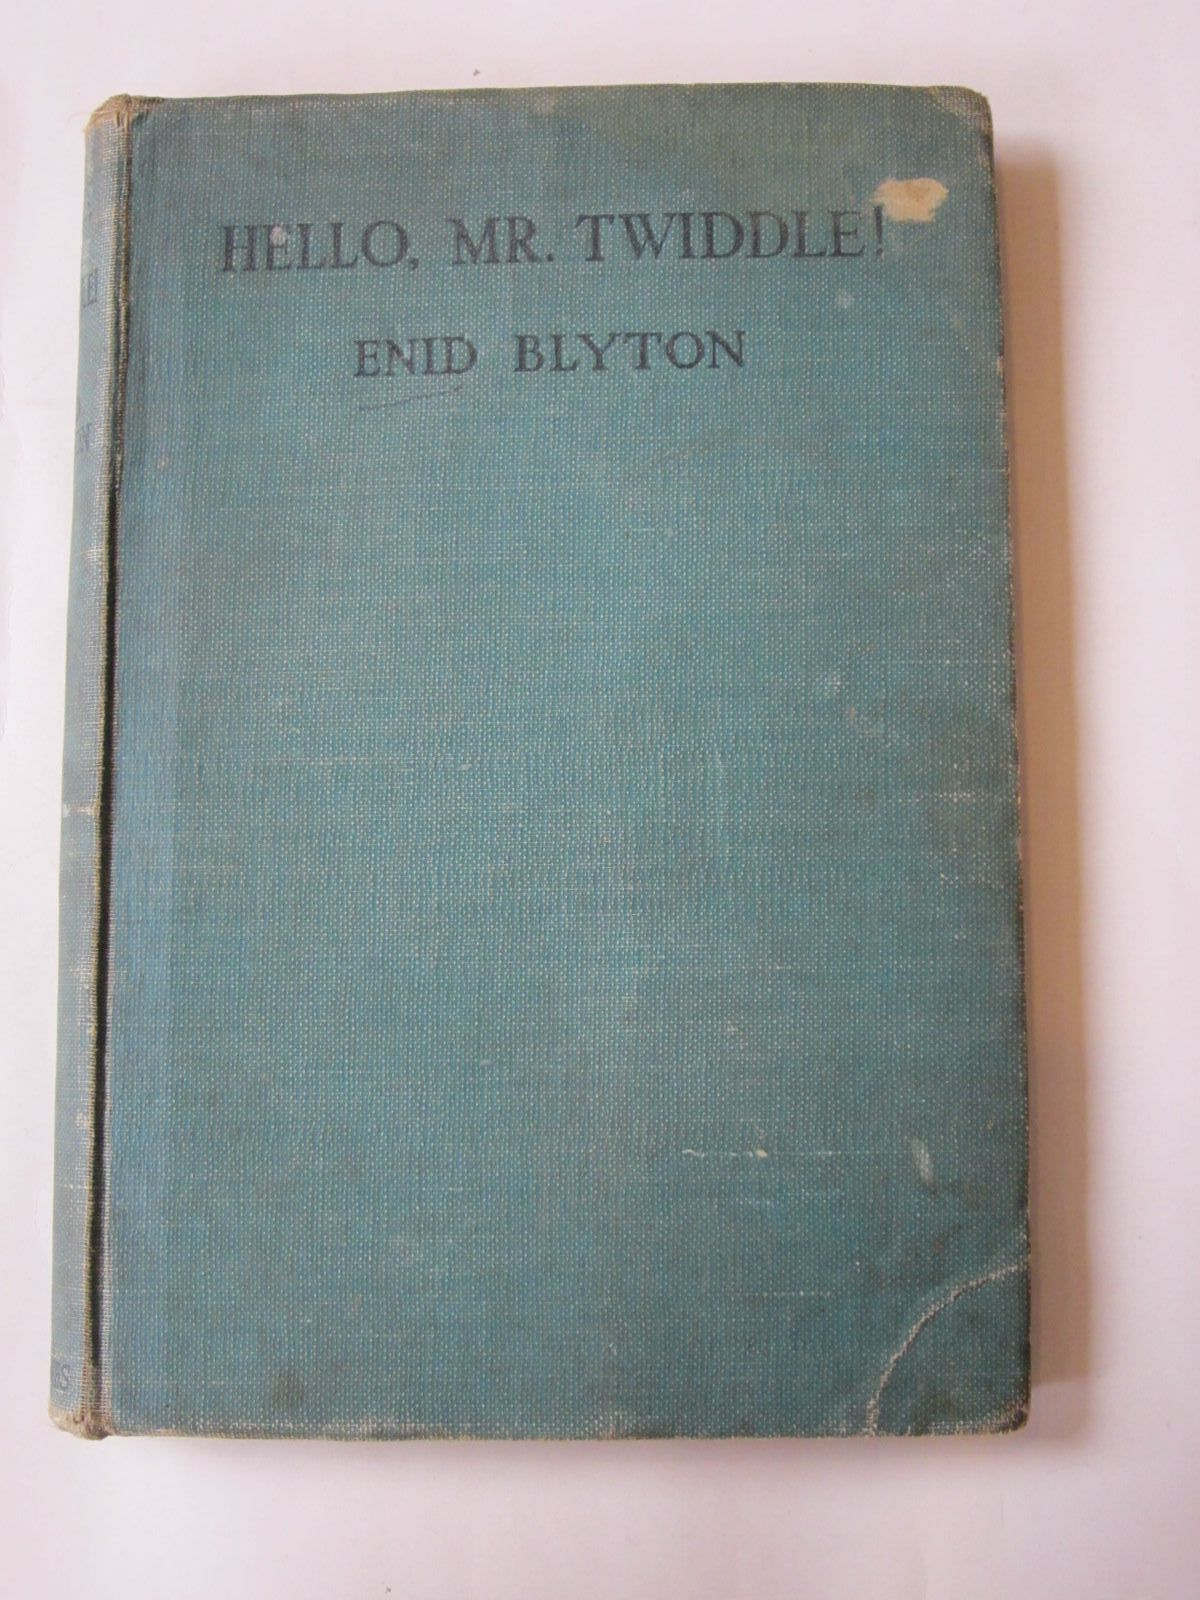 Photo of HELLO, MR. TWIDDLE! written by Blyton, Enid illustrated by McGavin, Hilda published by George Newnes Ltd. (STOCK CODE: 1308426)  for sale by Stella & Rose's Books